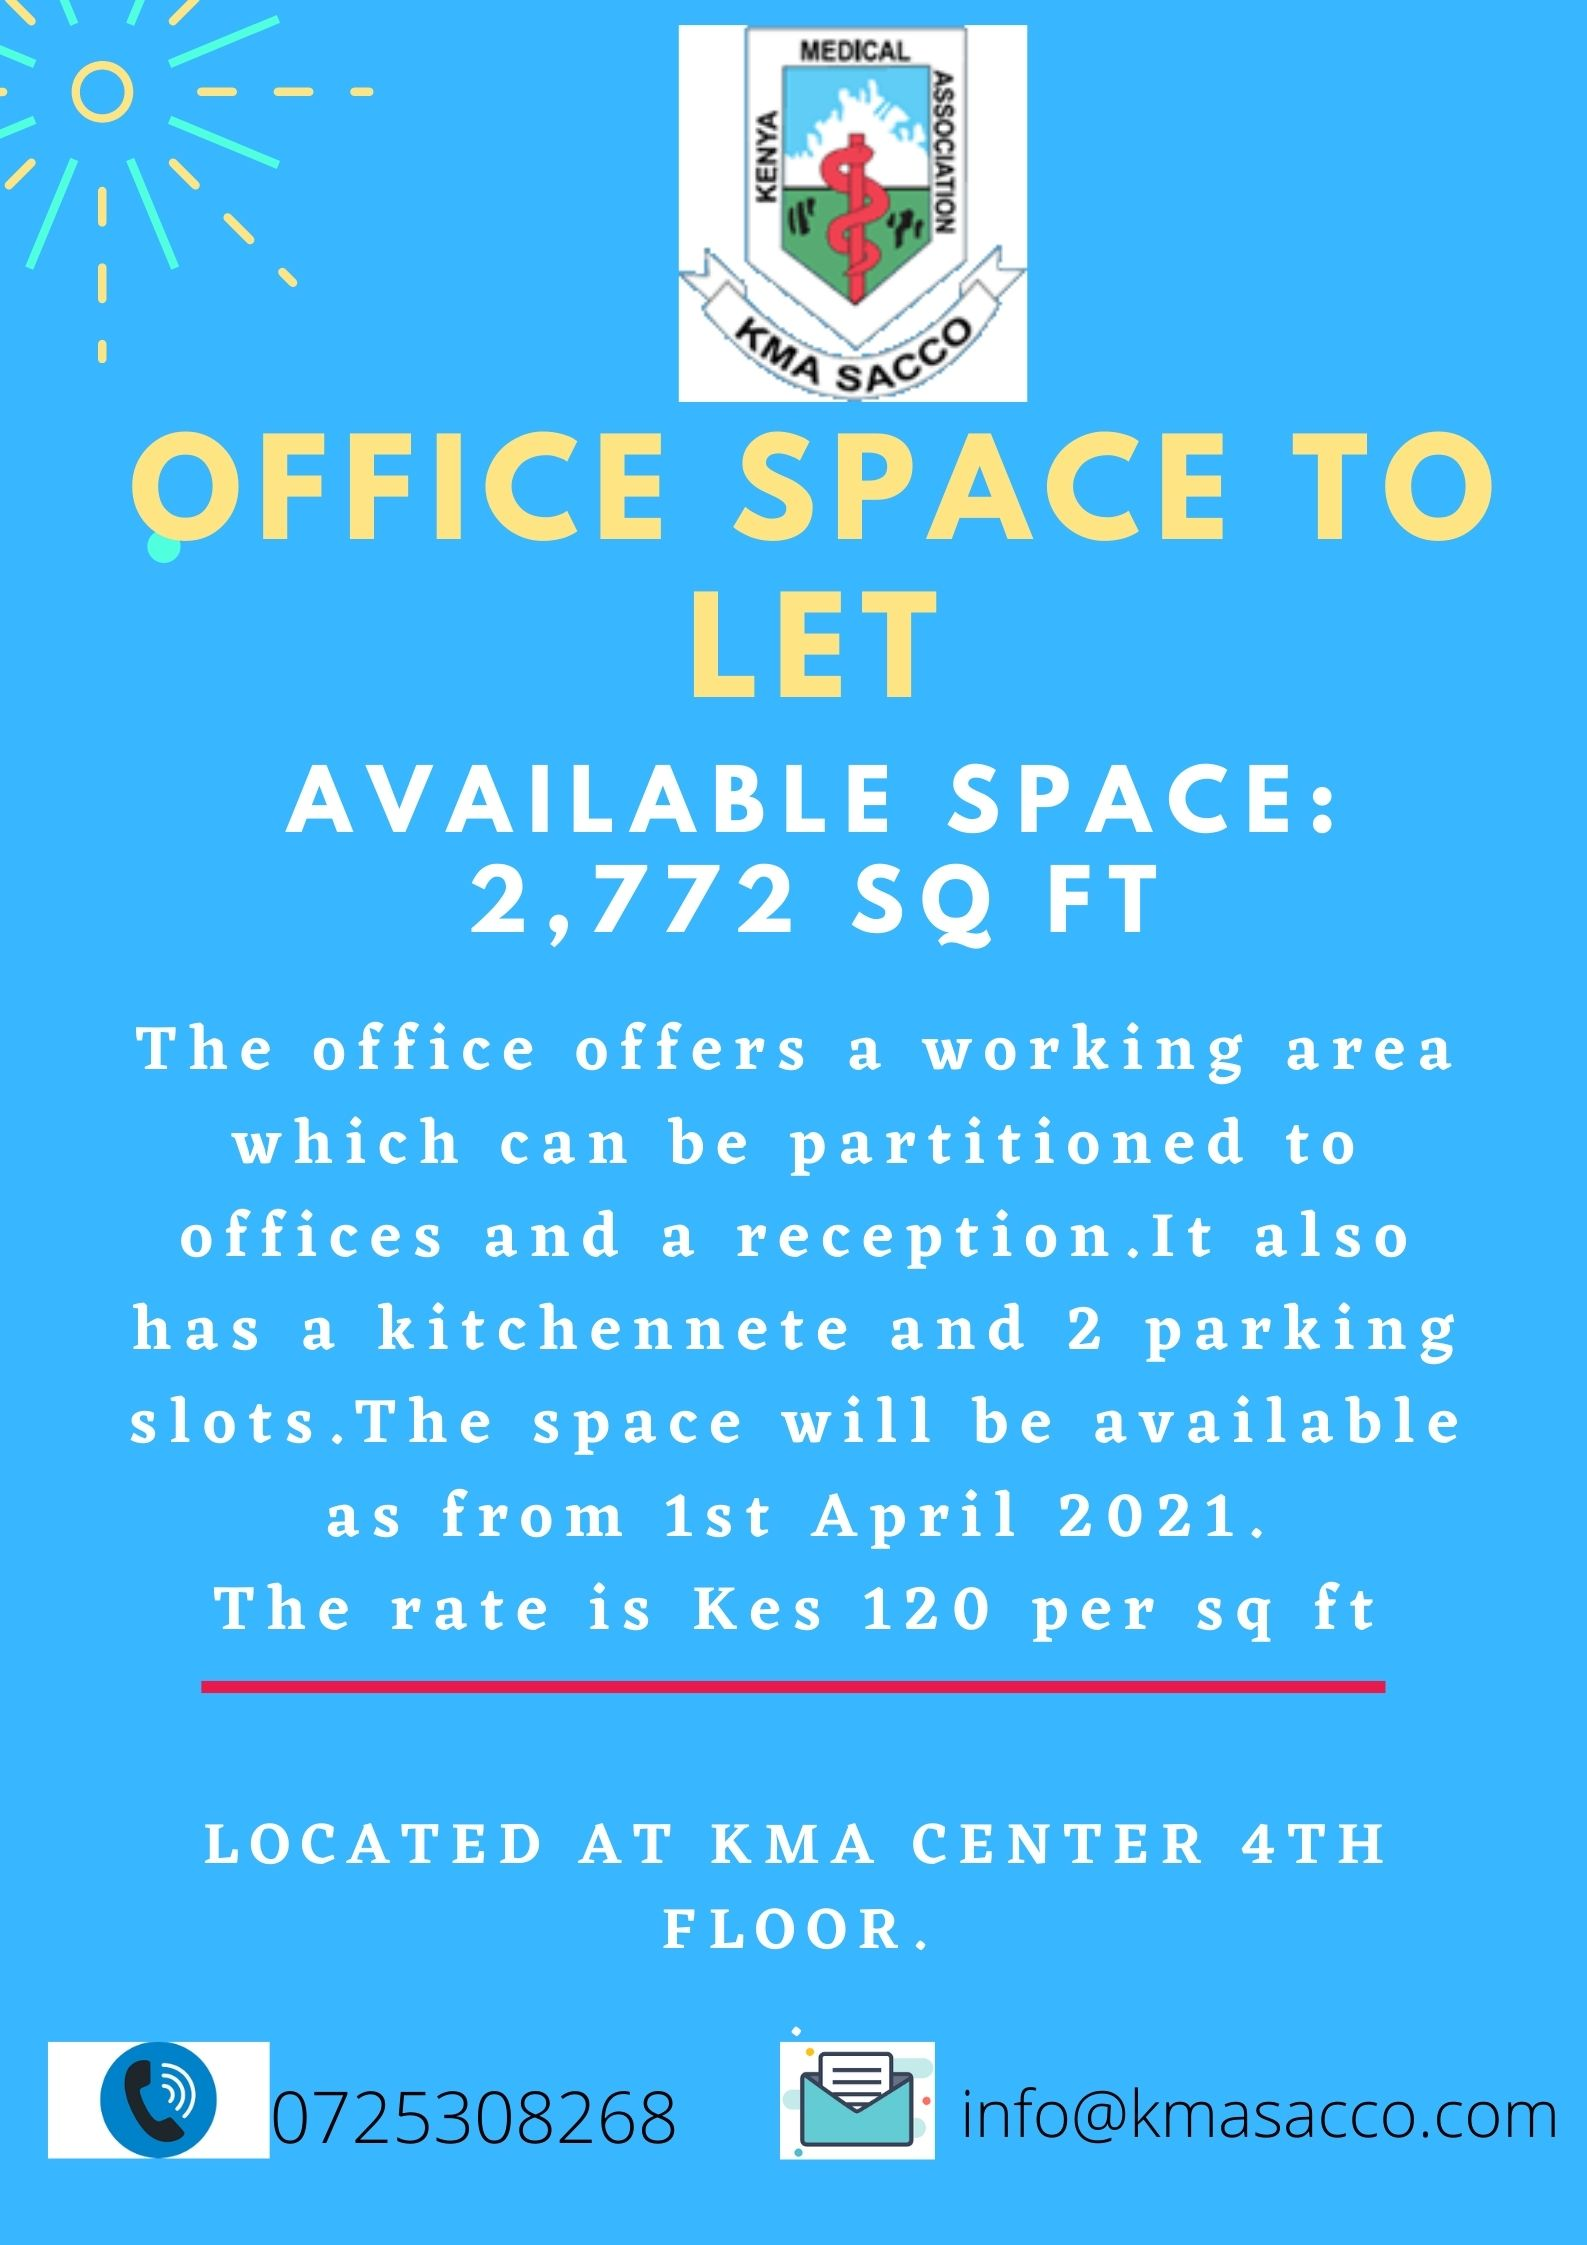 OFFICE-SPACE-TO-LET-2021